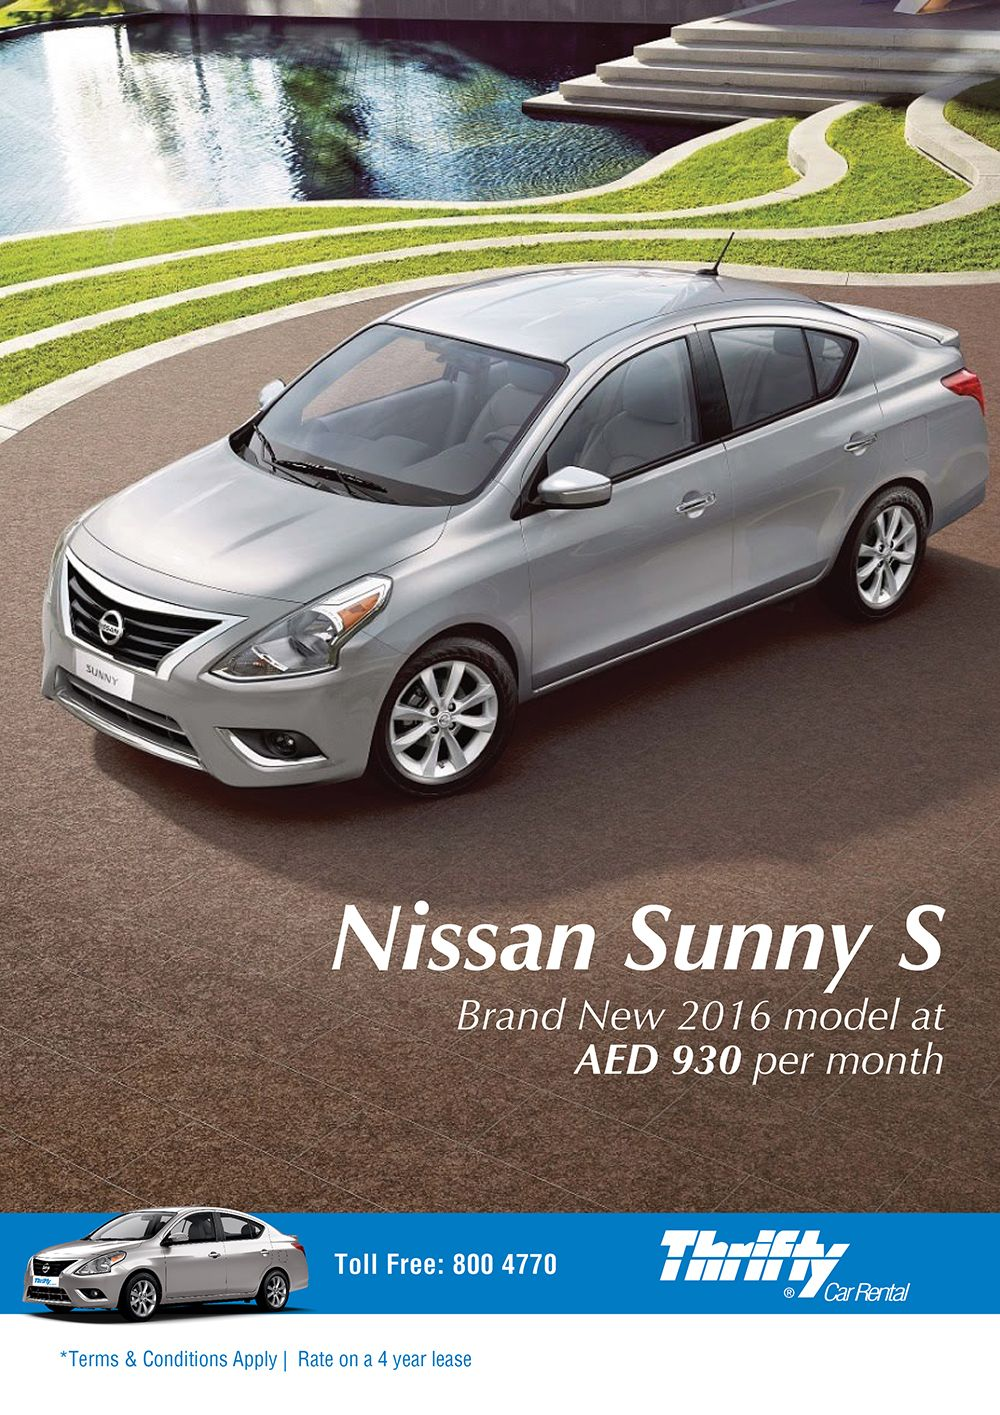 Pin By Thrifty On Rent From Thrifty Nissan Sunny Car Rental Rental